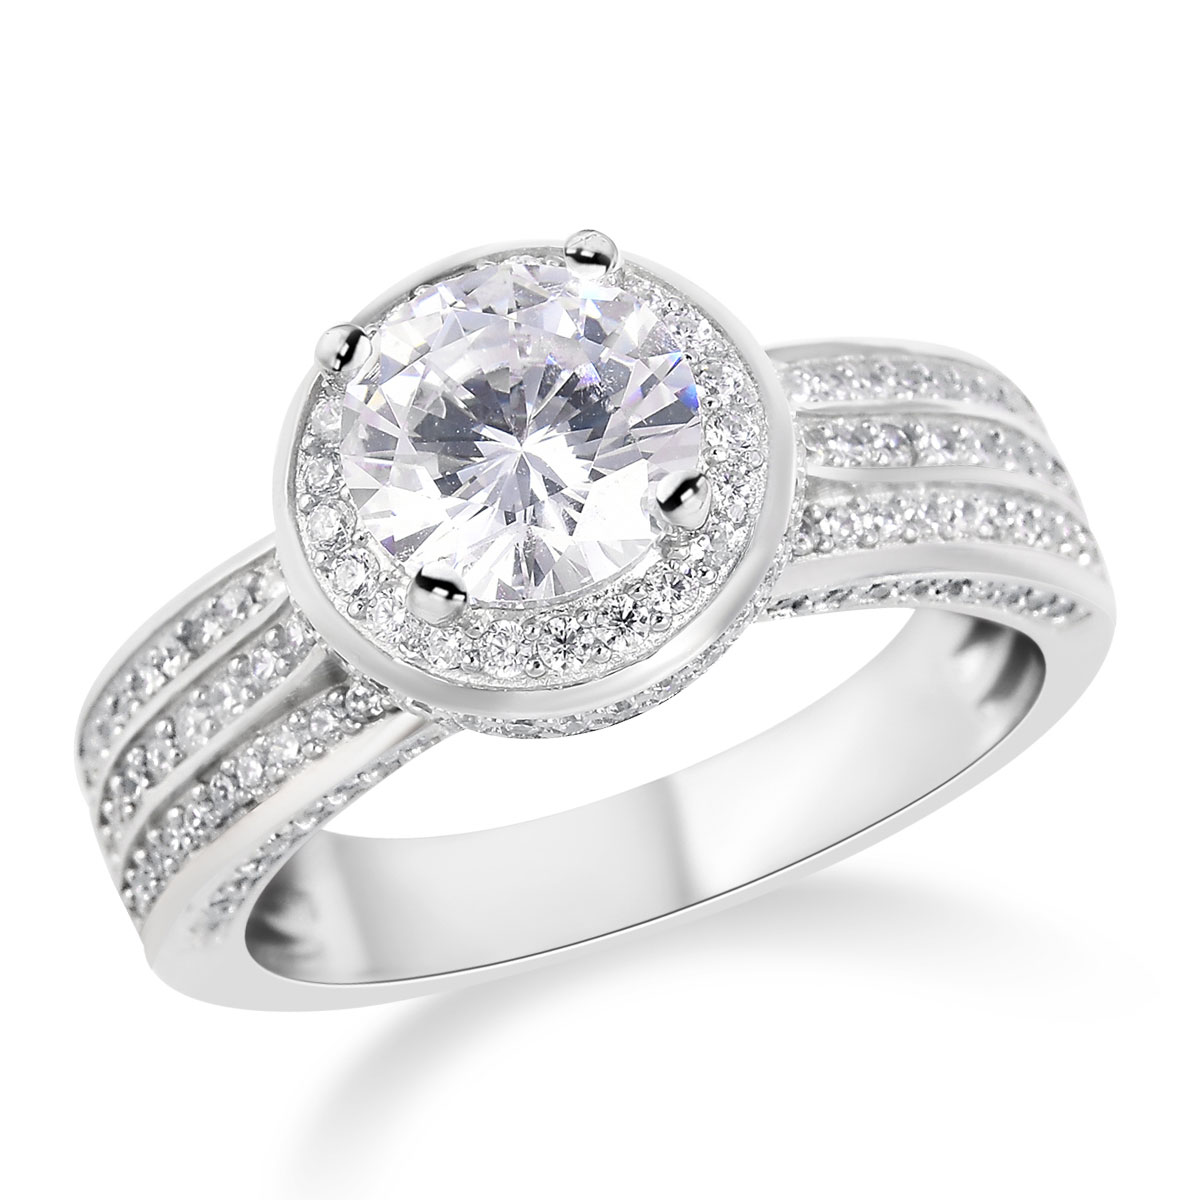 2c0903db3f828 LUSTRO STELLA CZ Halo Ring in Sterling Silver (Size 10.0) 4.56 ctw